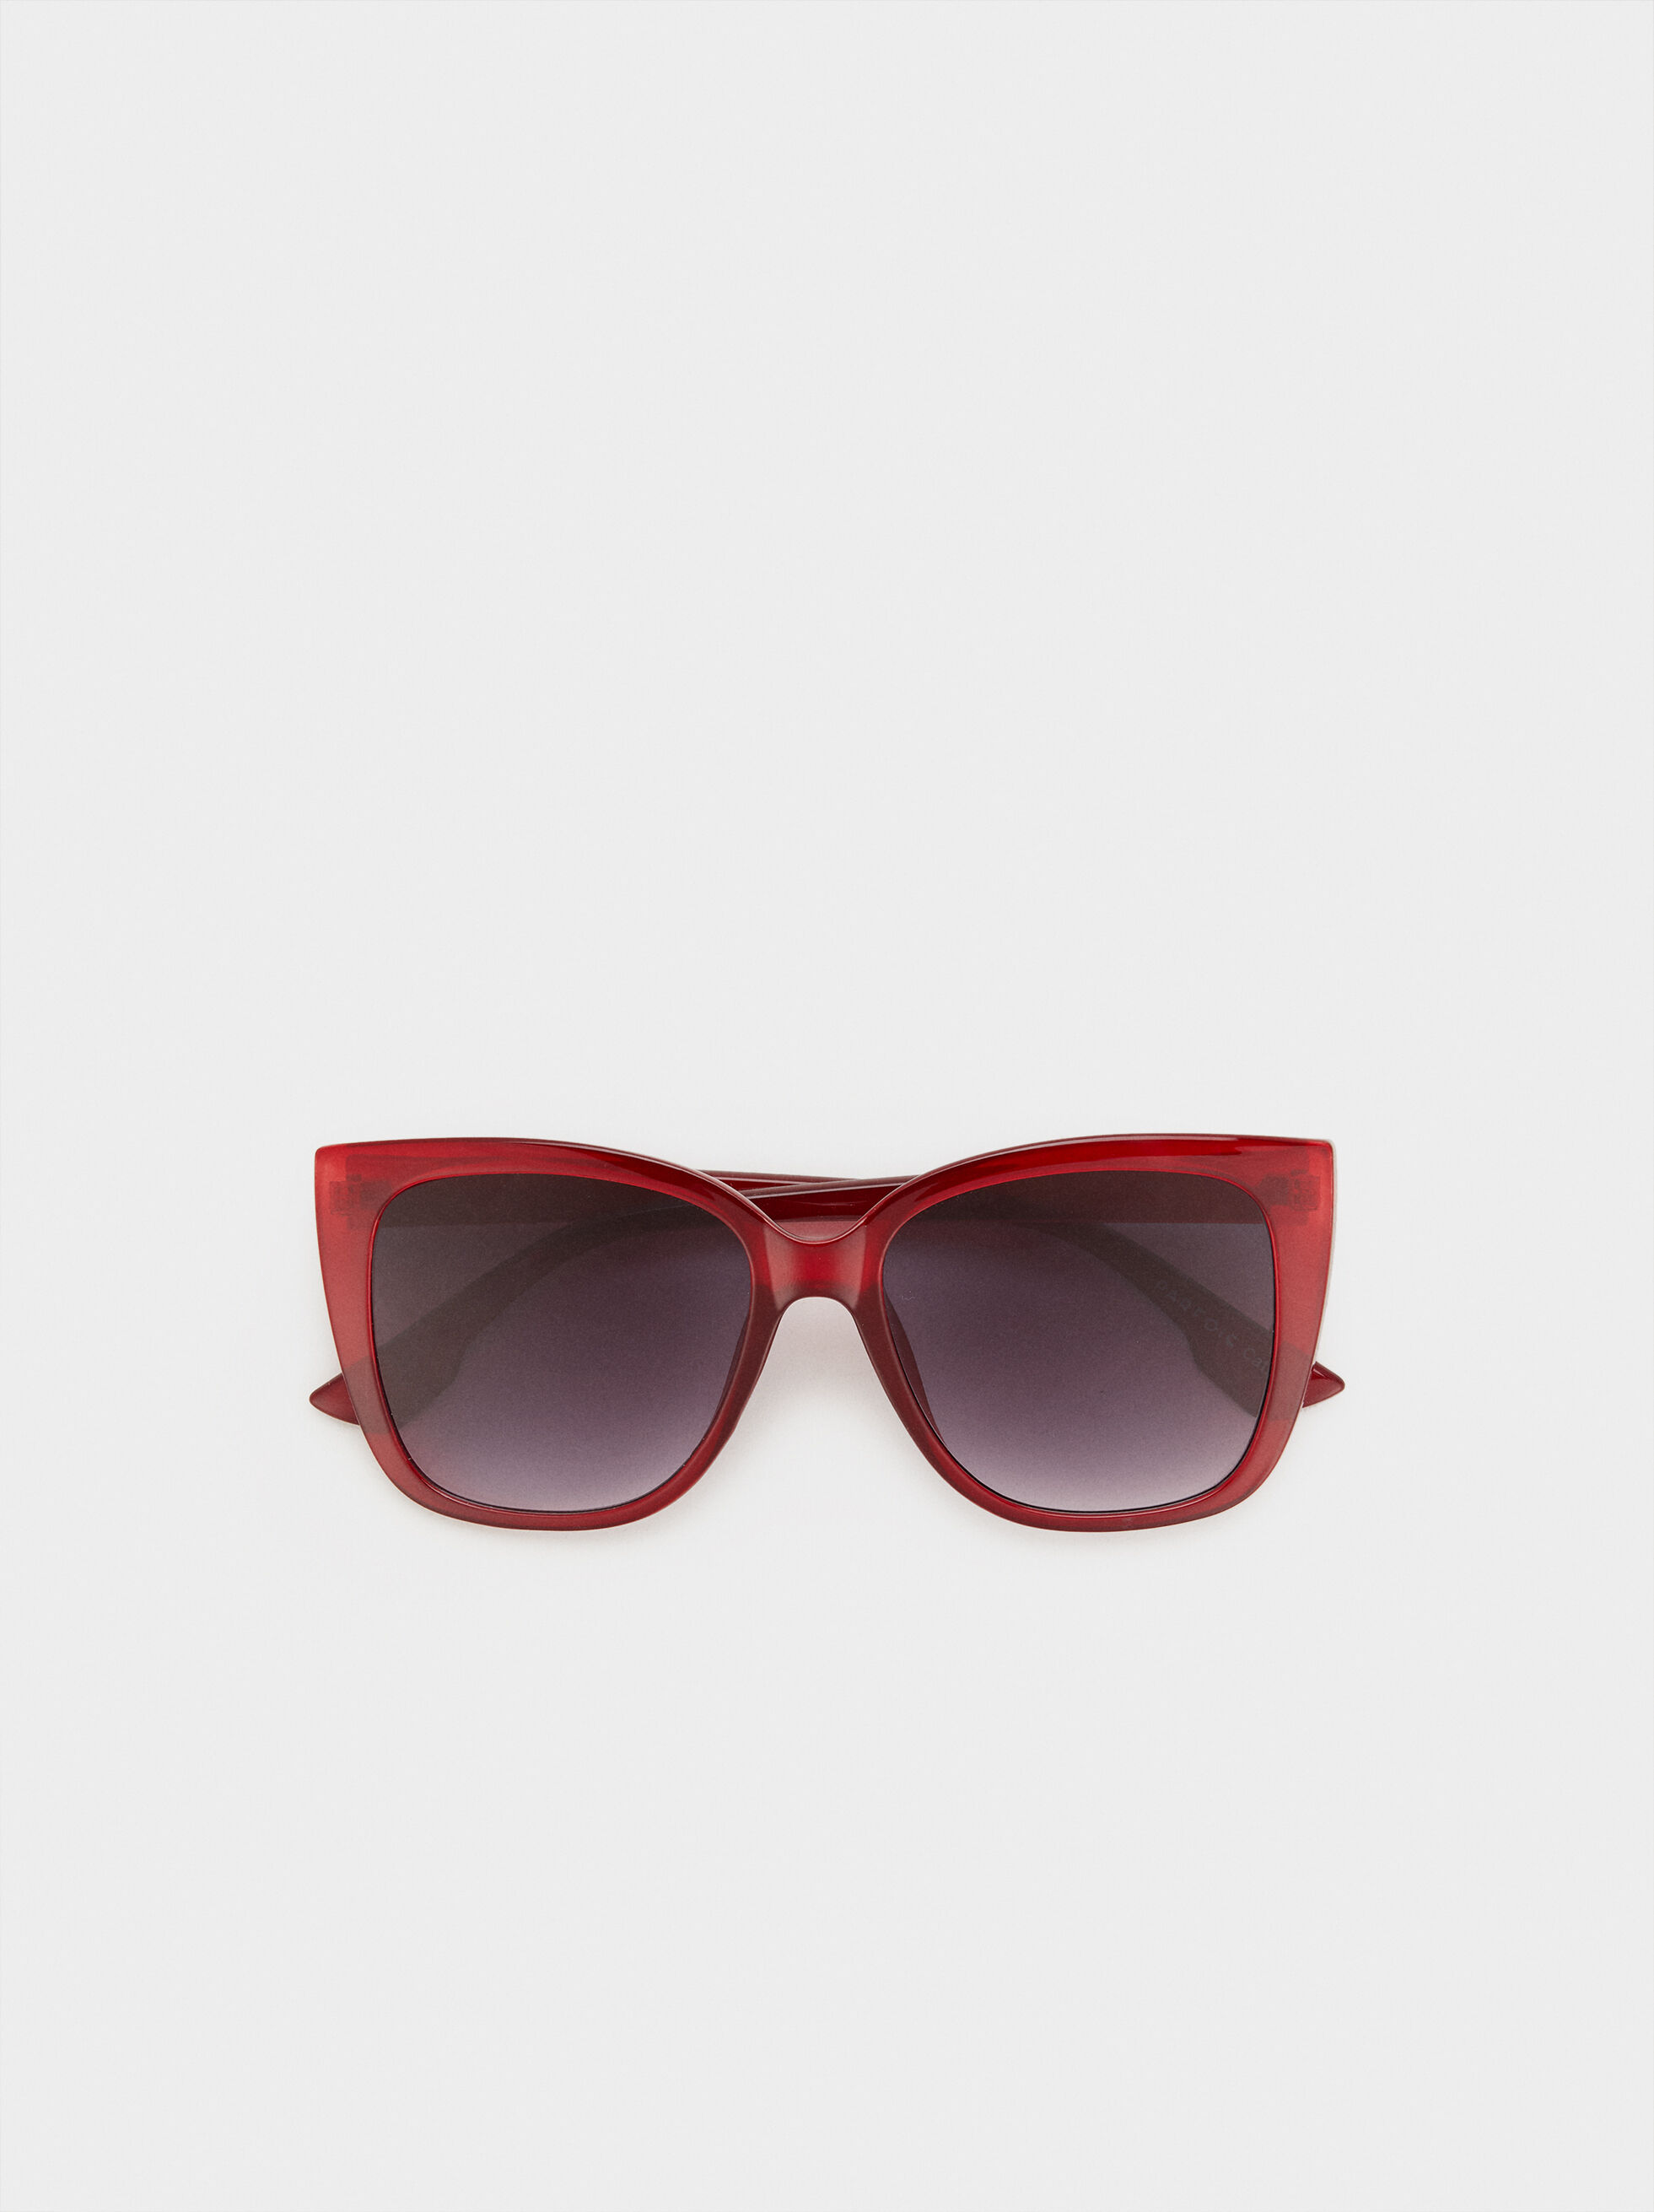 Resin Sunglasses, Red, hi-res